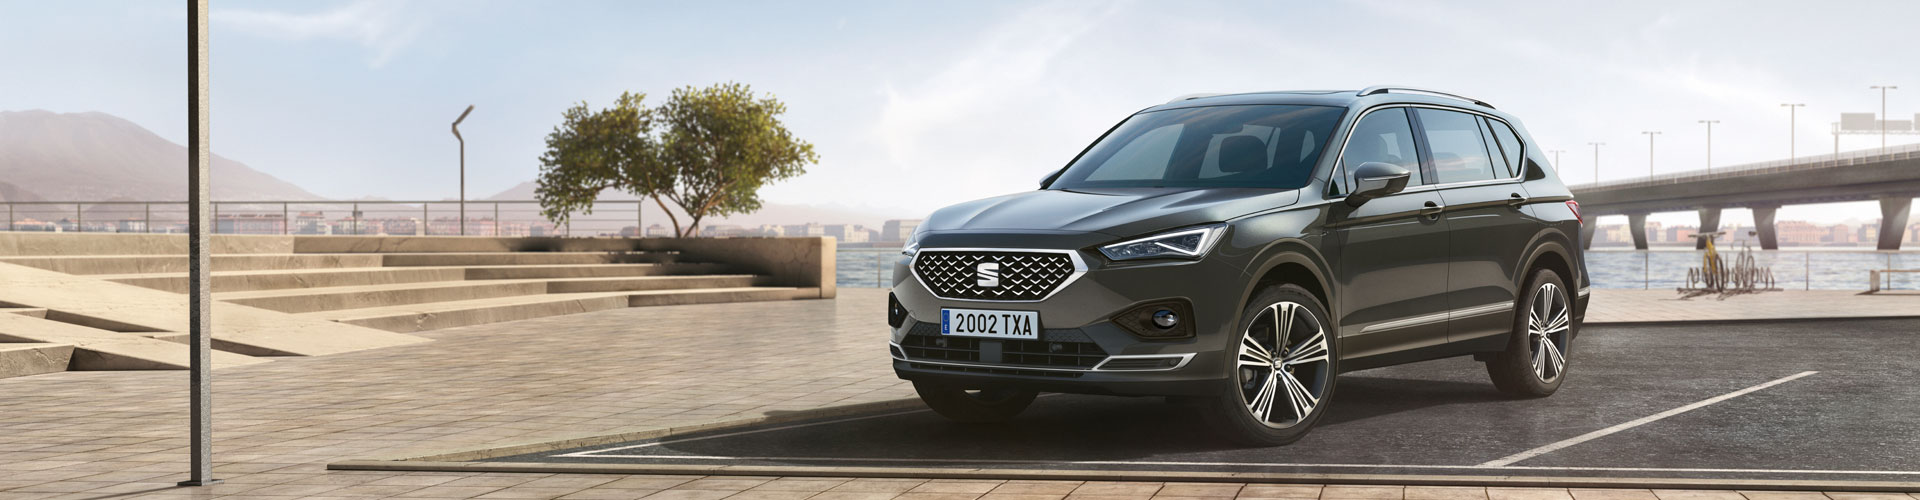 Image of SEAT Tarraco